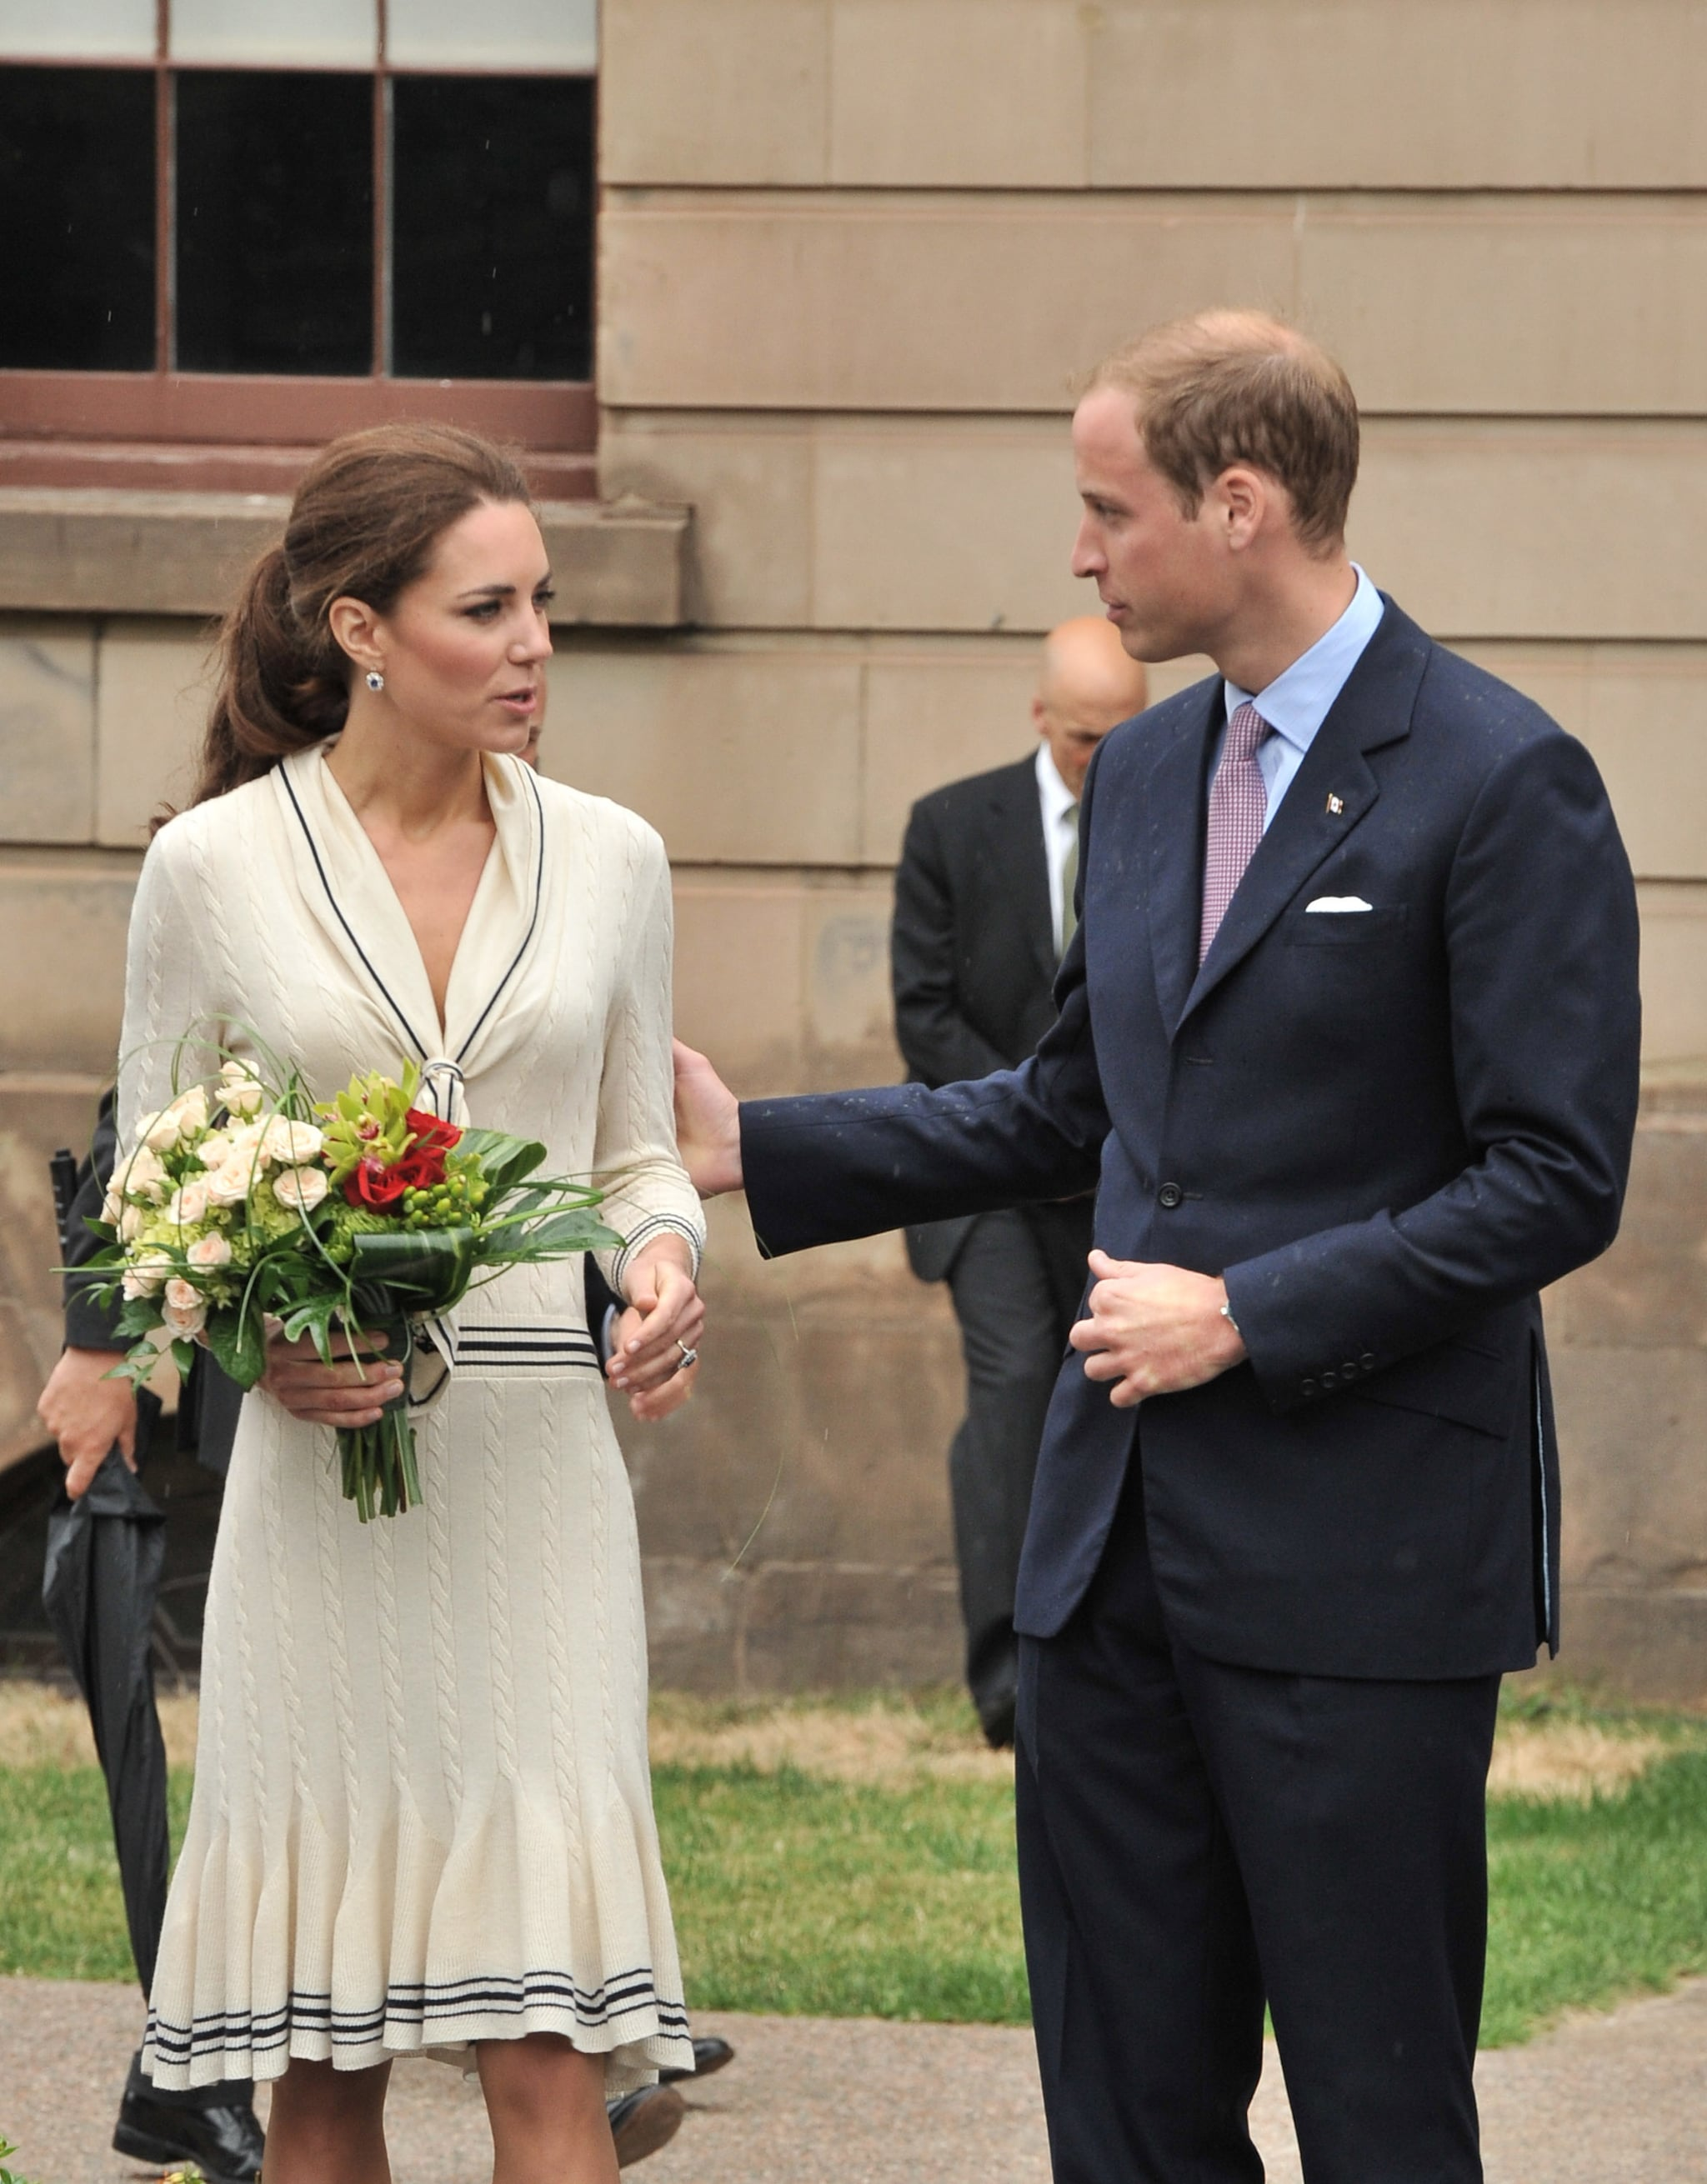 Pictures Of Prince William And Kate Middleton In White